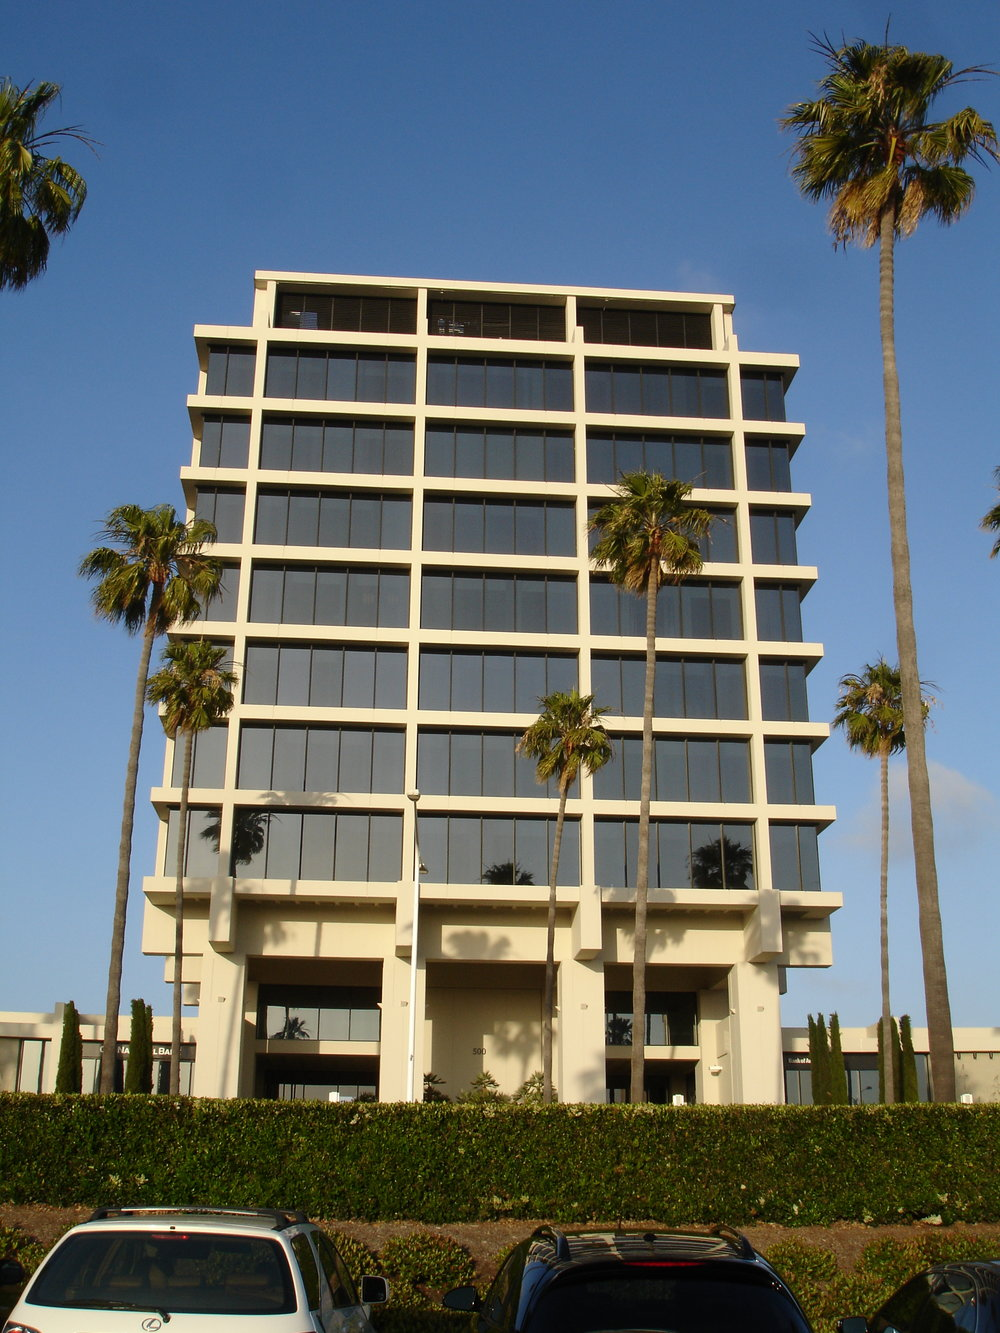 550 Newport Center Drive, Newport Beach, CA, The Irvine Company - tenant development for Gensler